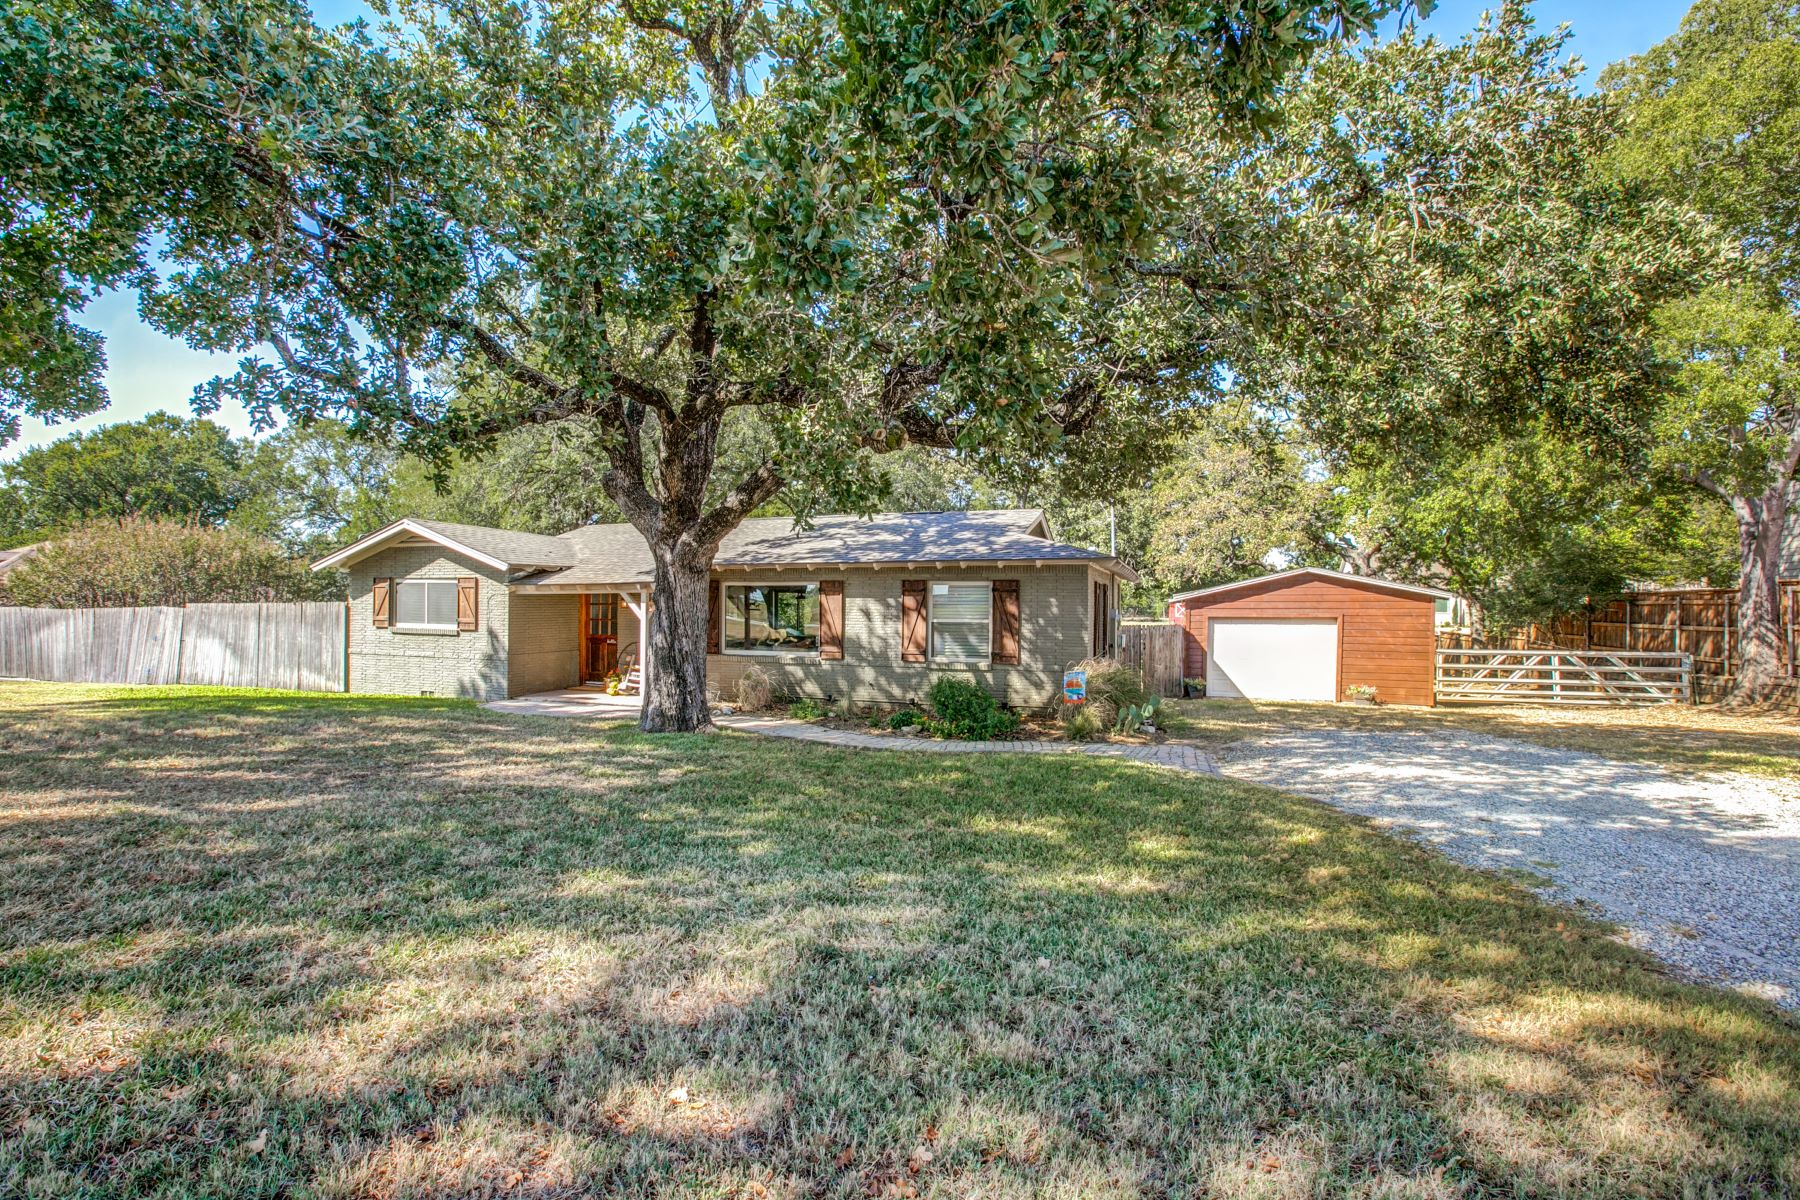 Single Family Homes for Sale at Charming Cottage in Colleyville ! 4800 Bransford Road Colleyville, Texas 76034 United States